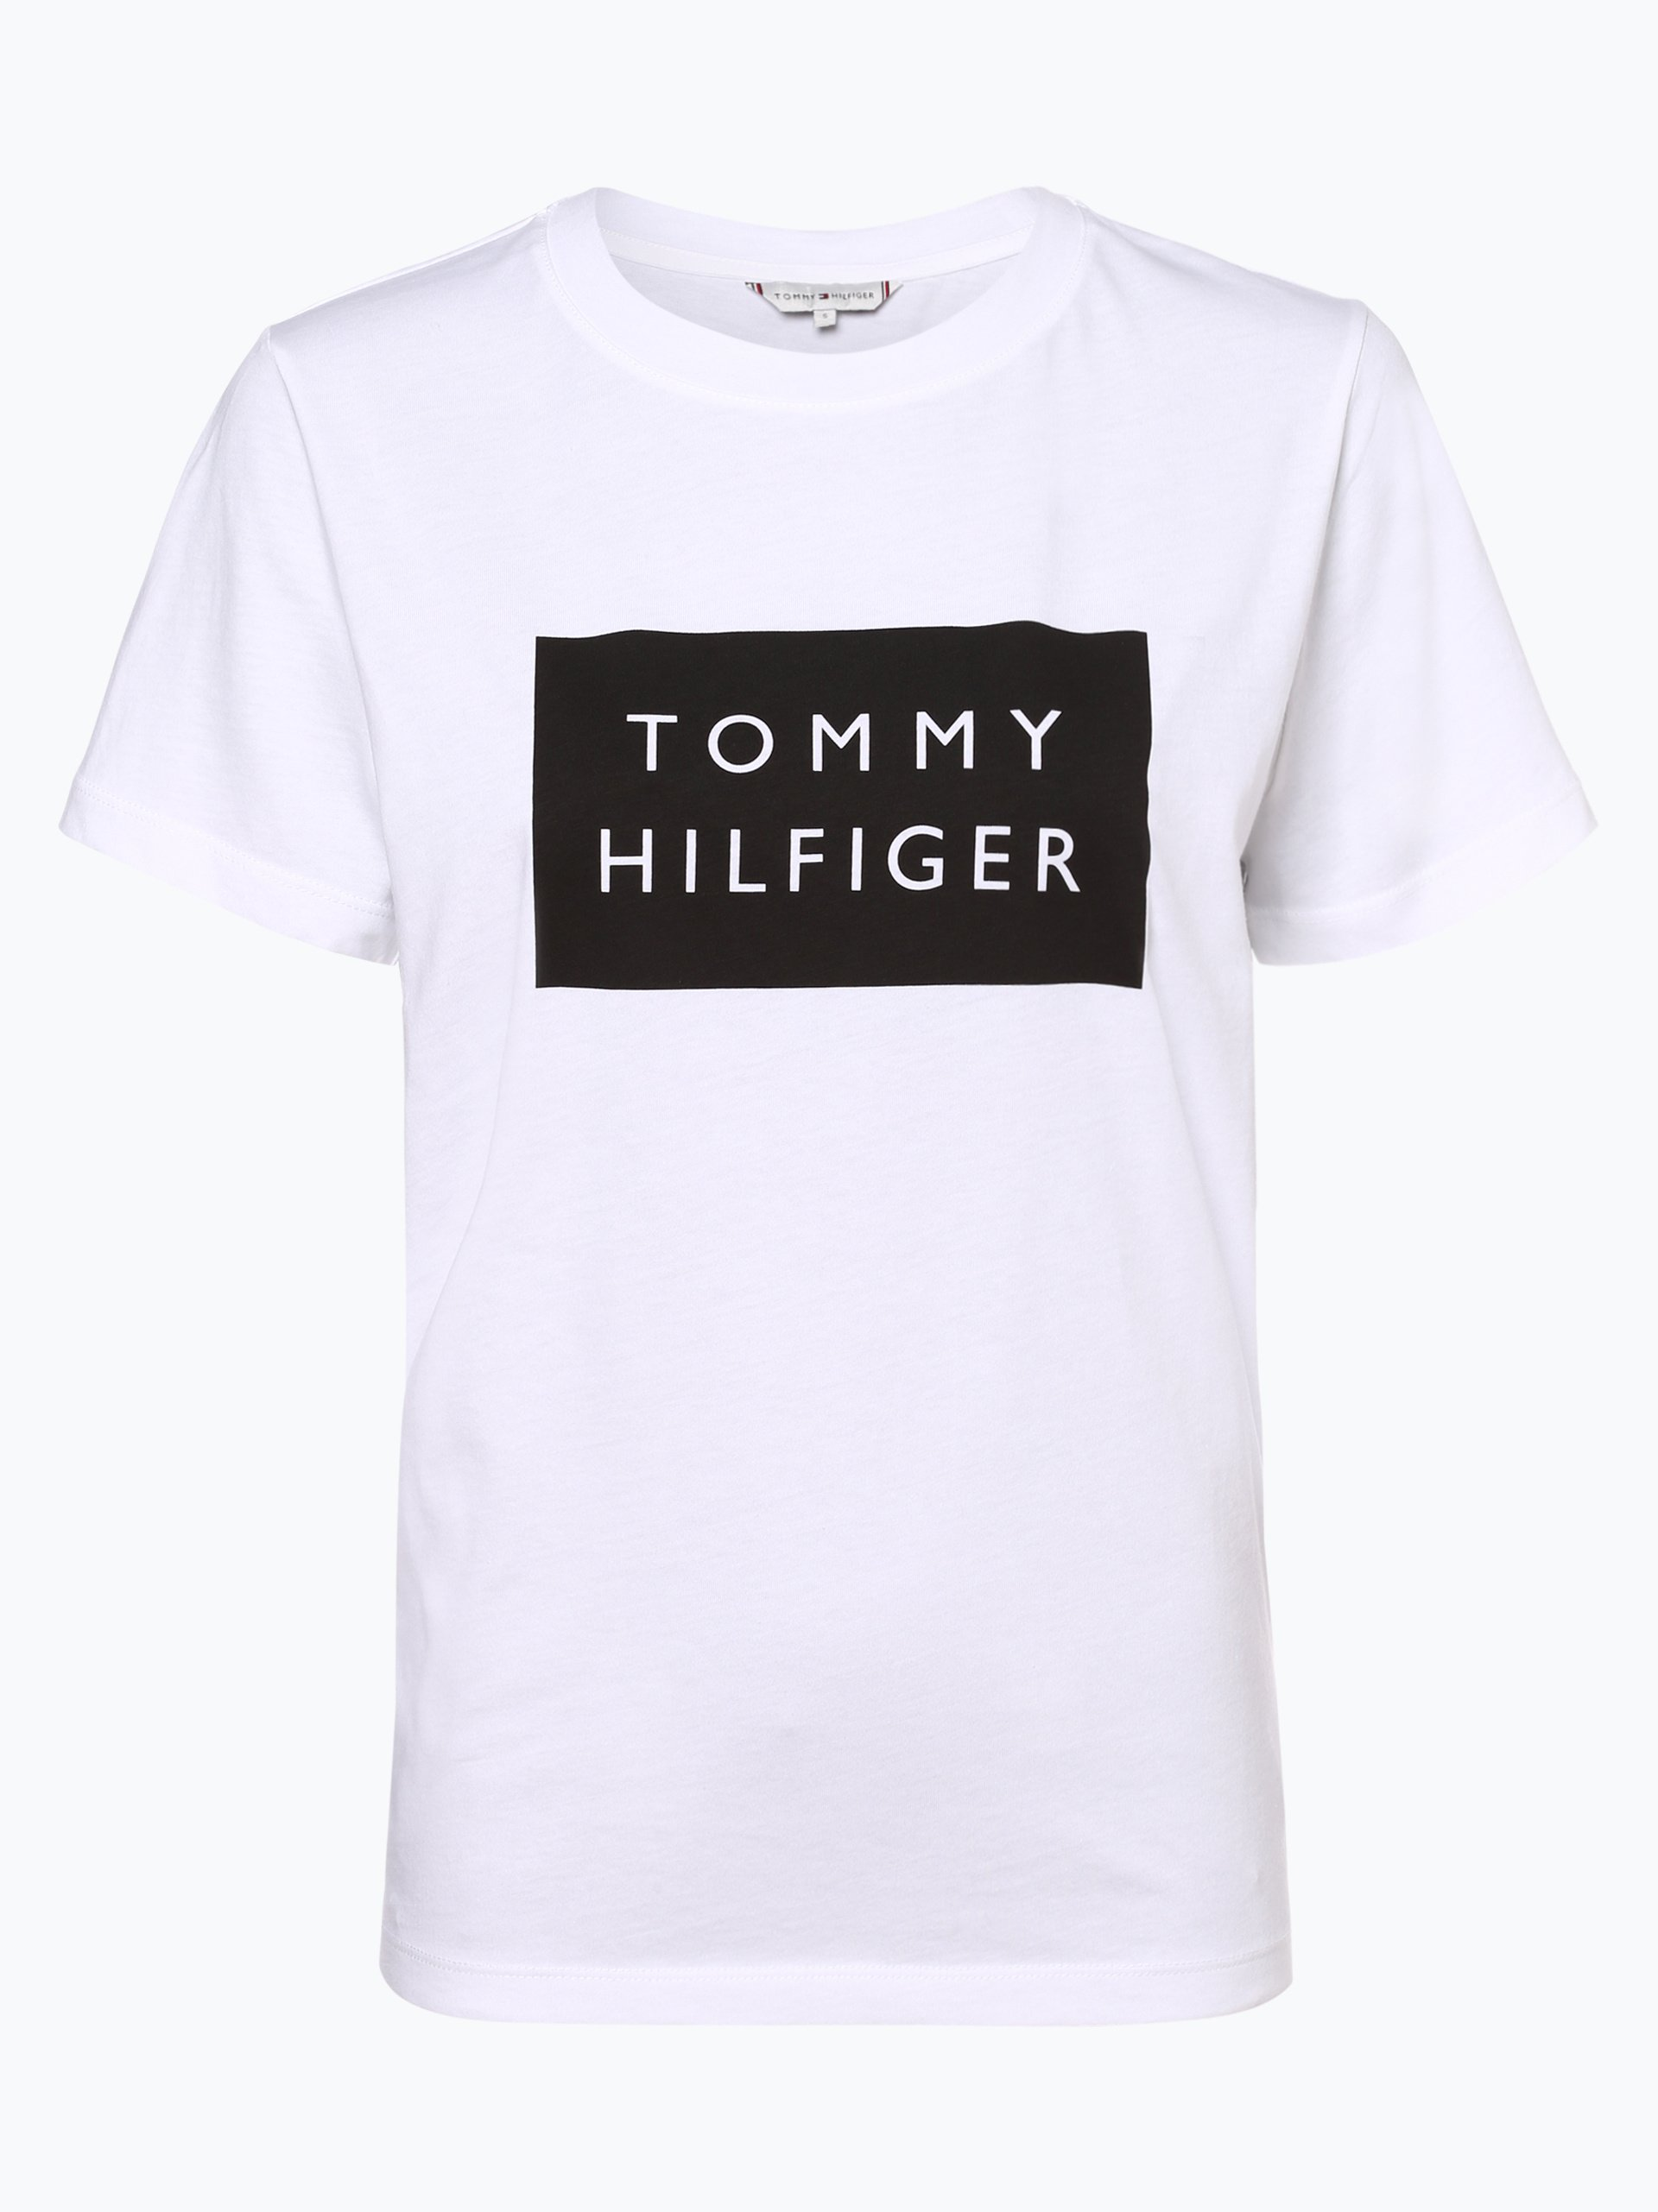 tommy hilfiger damen t shirt wei bedruckt online kaufen. Black Bedroom Furniture Sets. Home Design Ideas